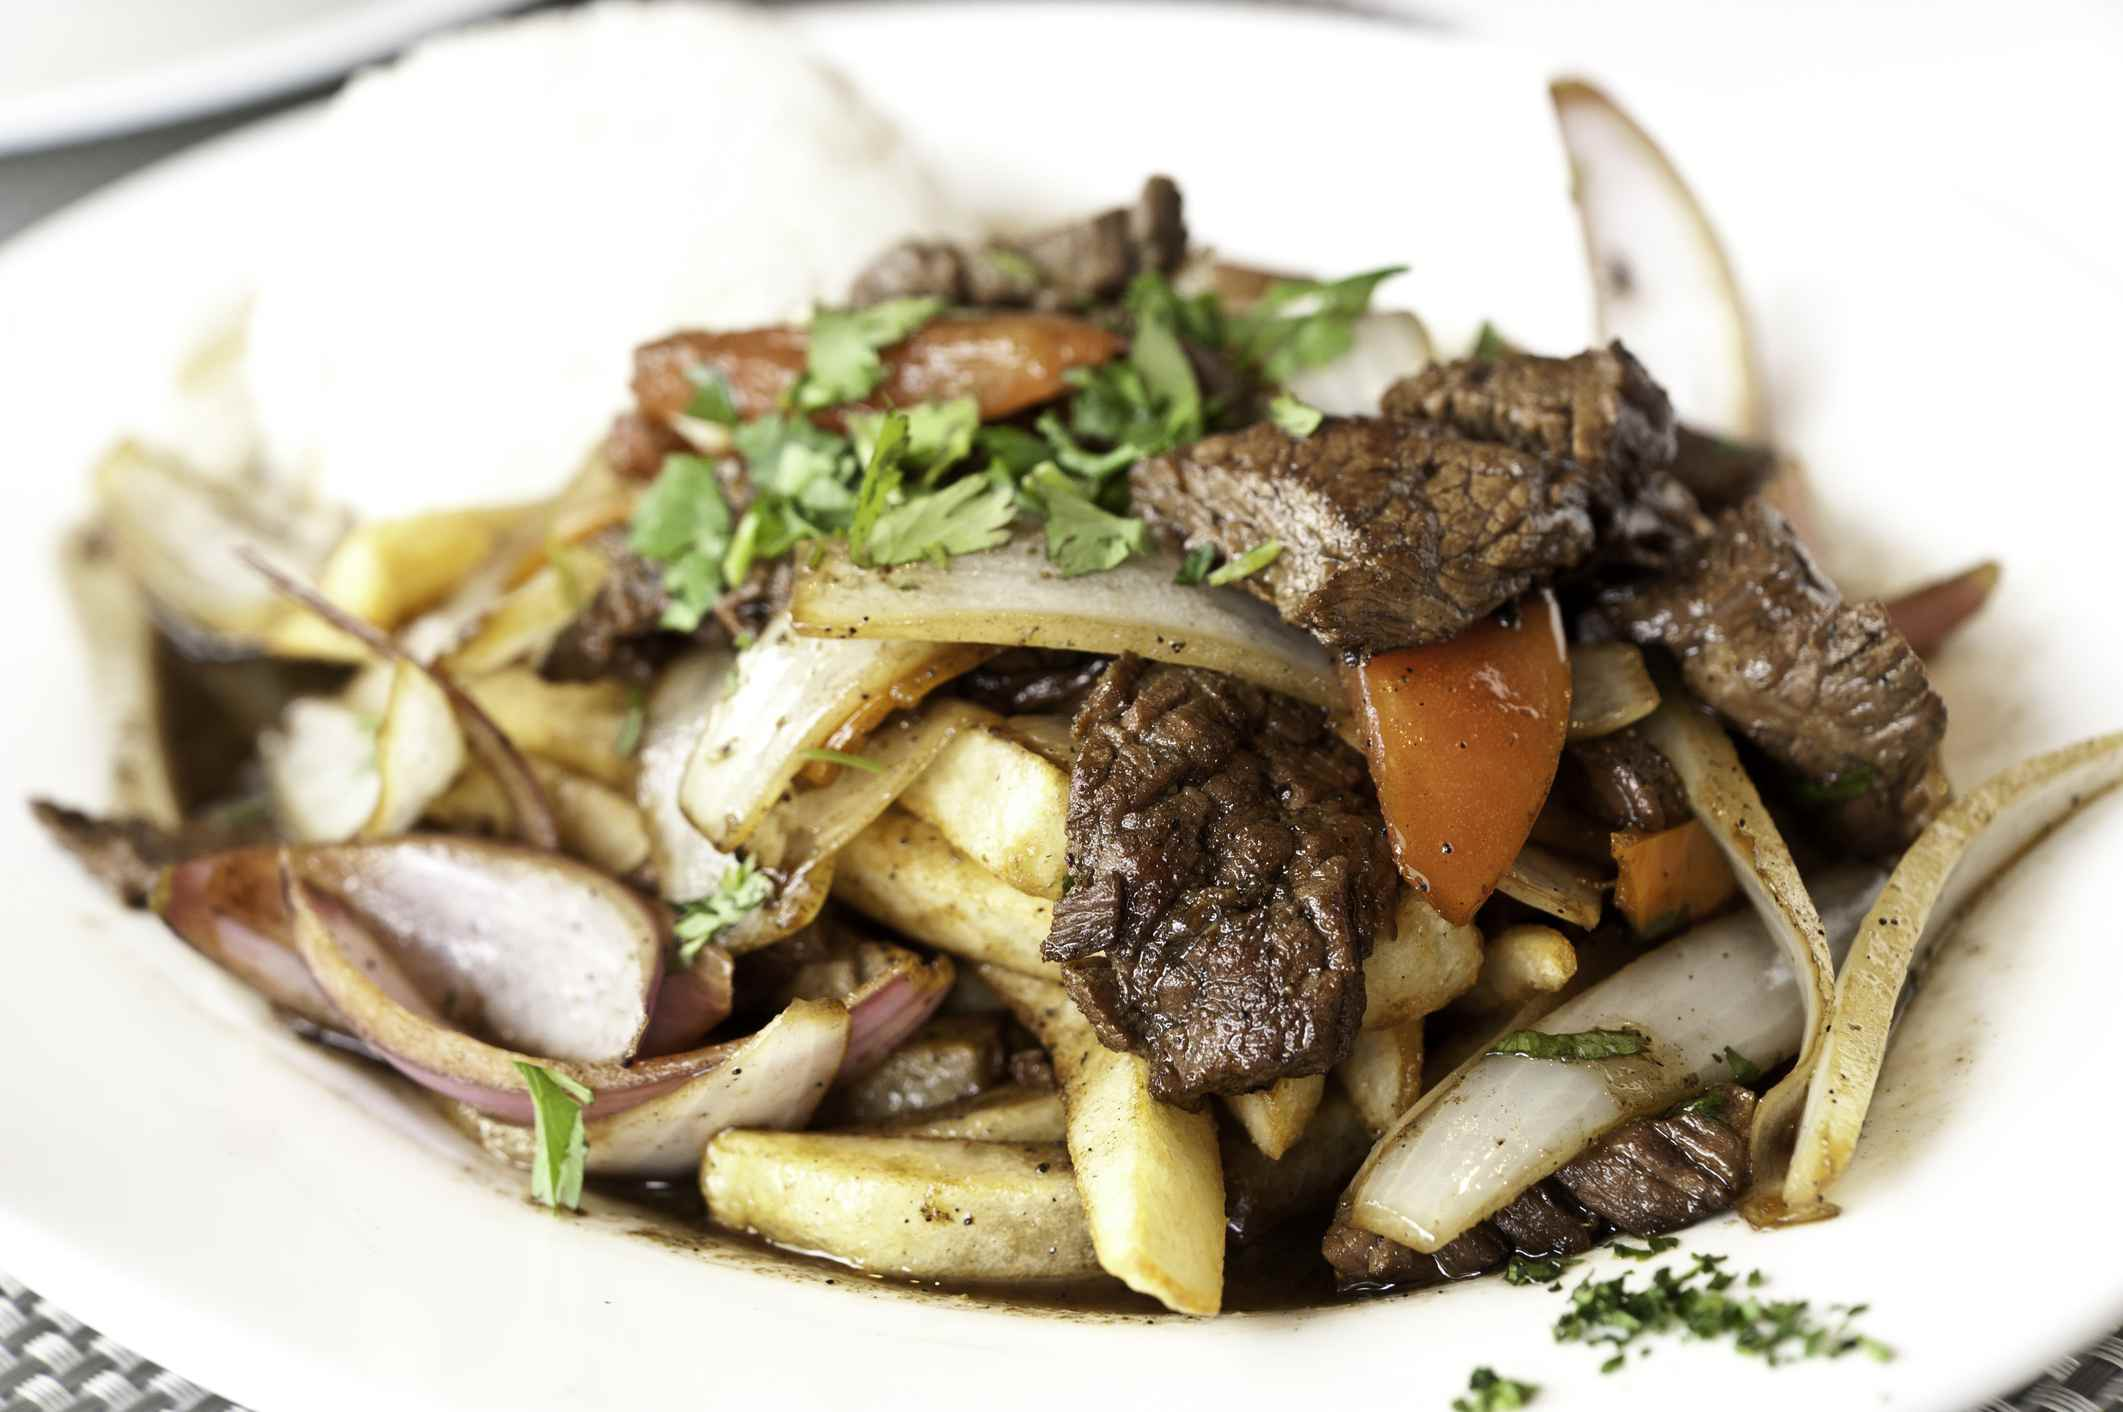 Beef and Potato Stir-fry